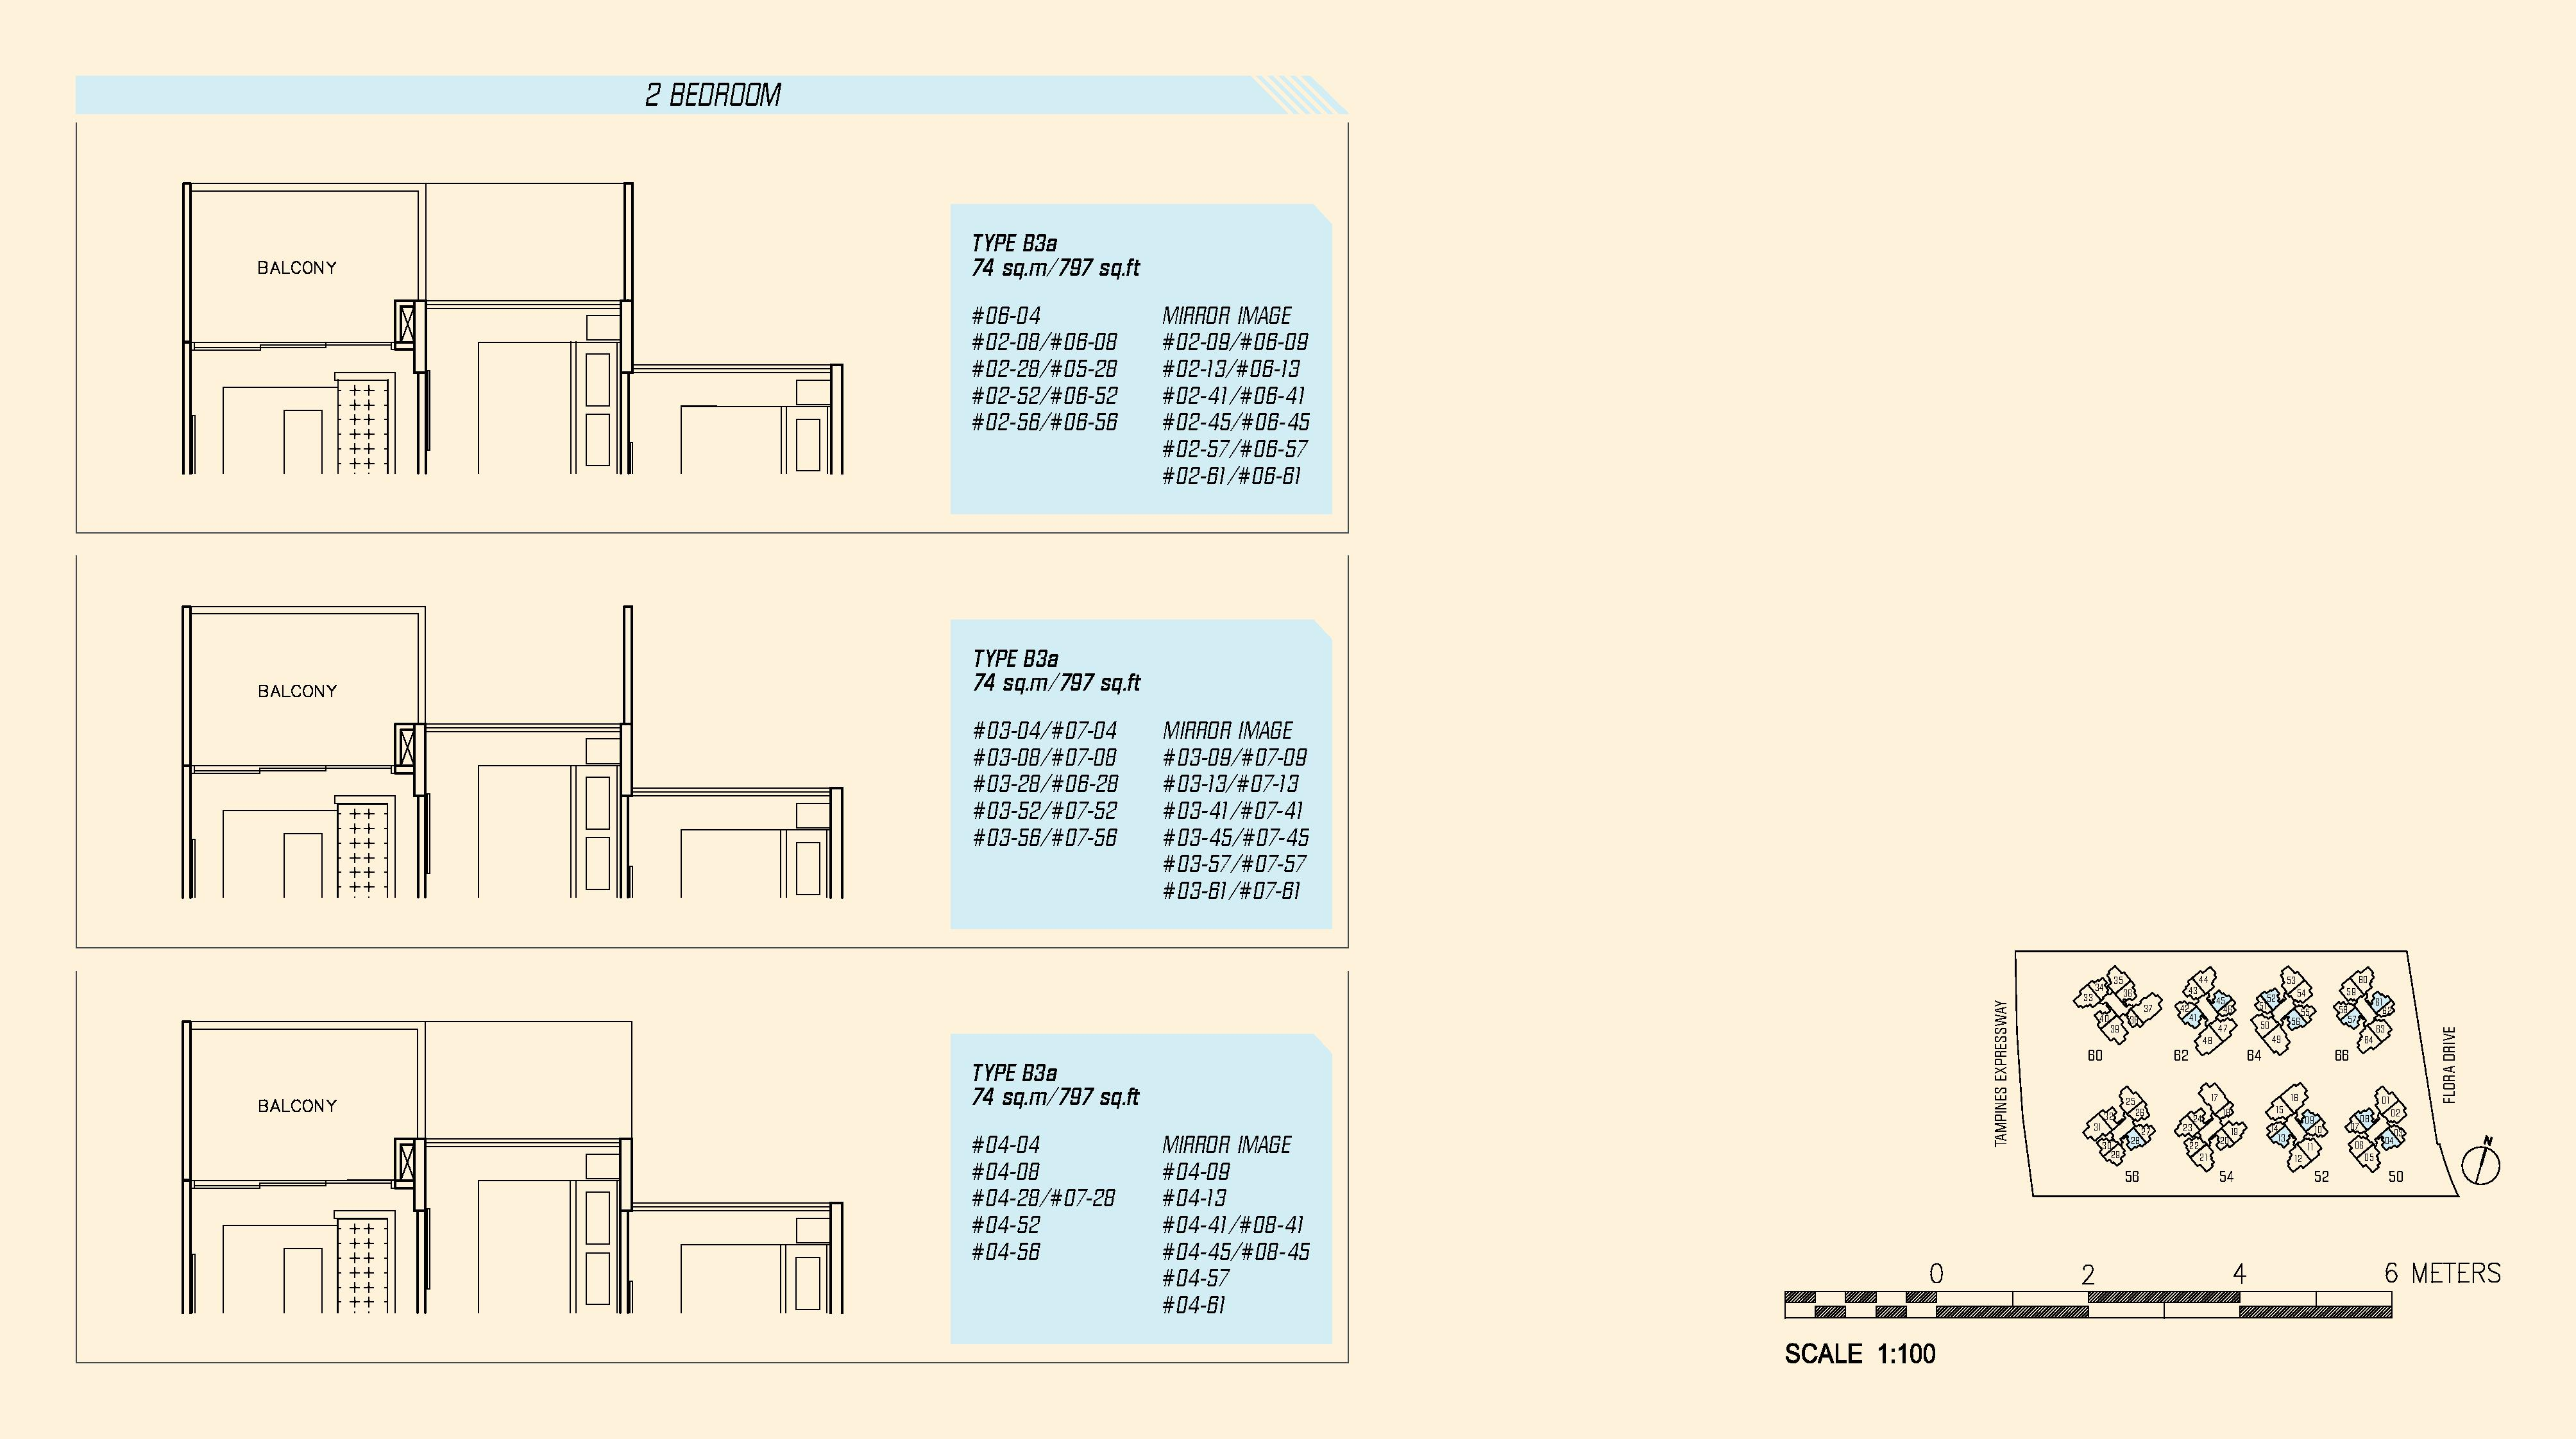 Parc Olympia 2 Bedroom Floor Plans Type B3a